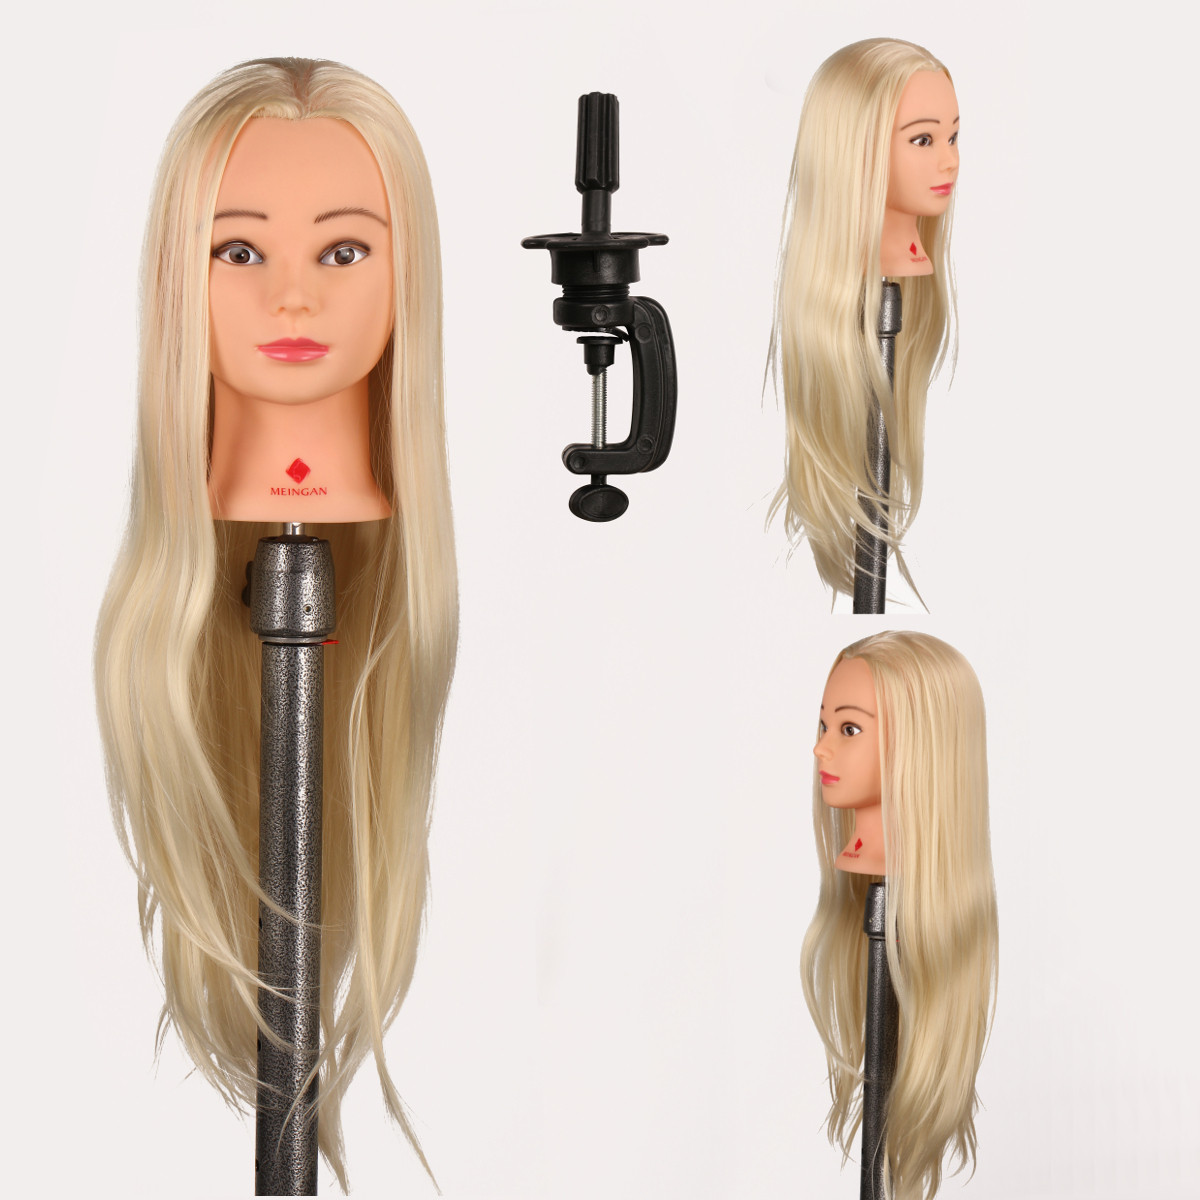 29 inch Hair Salon Hairdressing Training Practice Model Mannequin Doll Head With Clamp Holder 2019 New